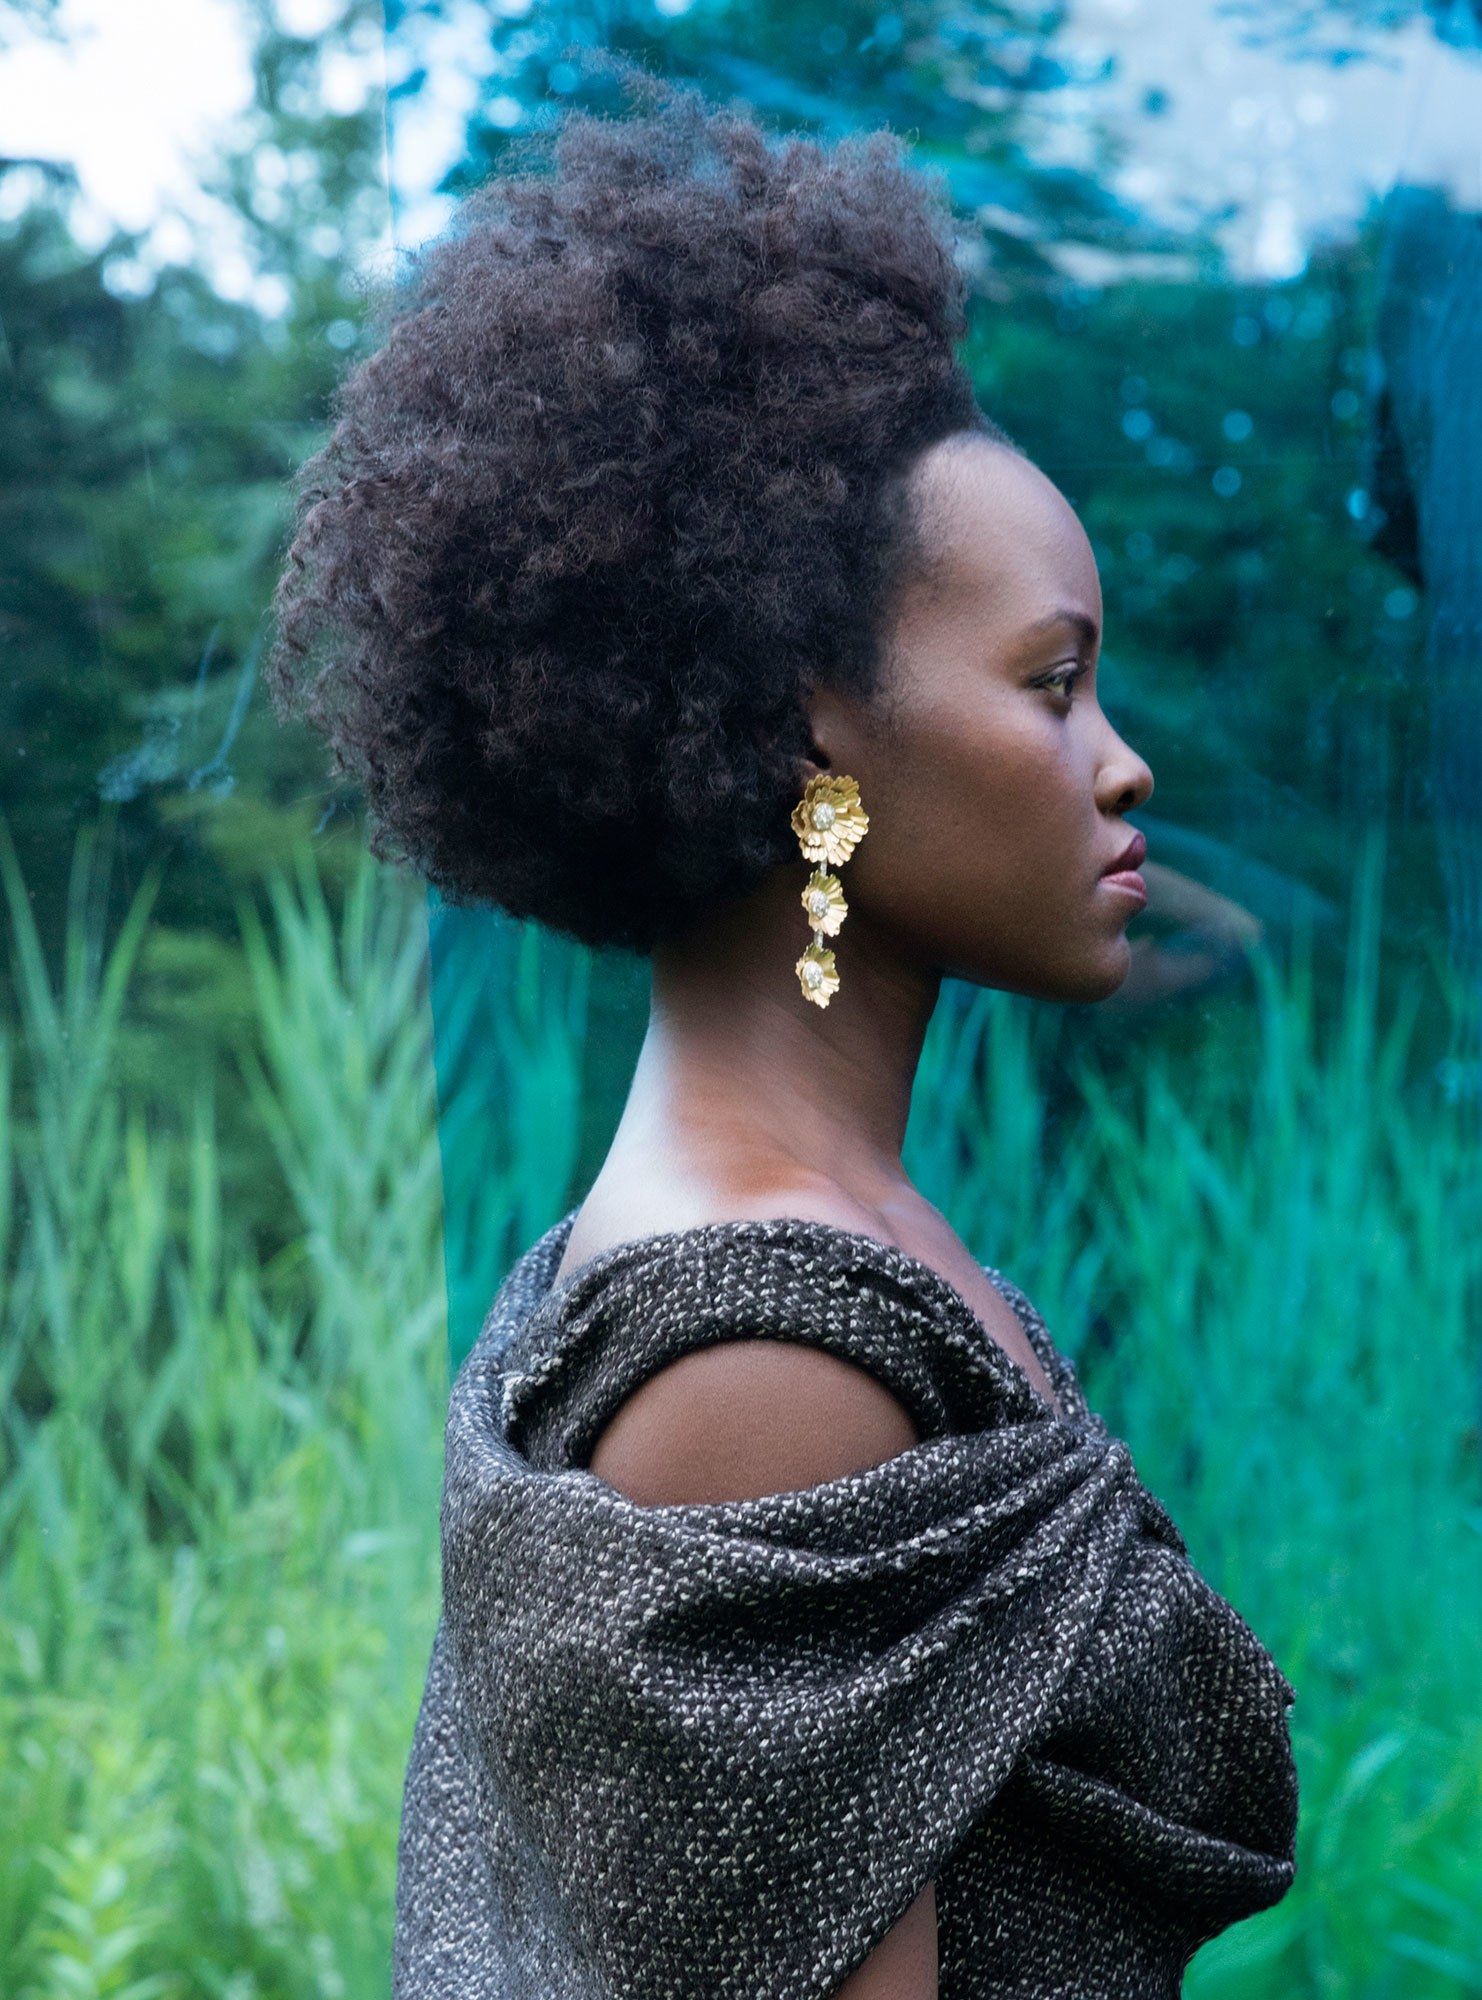 Dress by Prada; earrings by Irene Neuwirth.LUPITA NYONG'o. PHOTOGRAPH BY JACKIE NICKERSON; STYLED BY SAMIRA NASR.